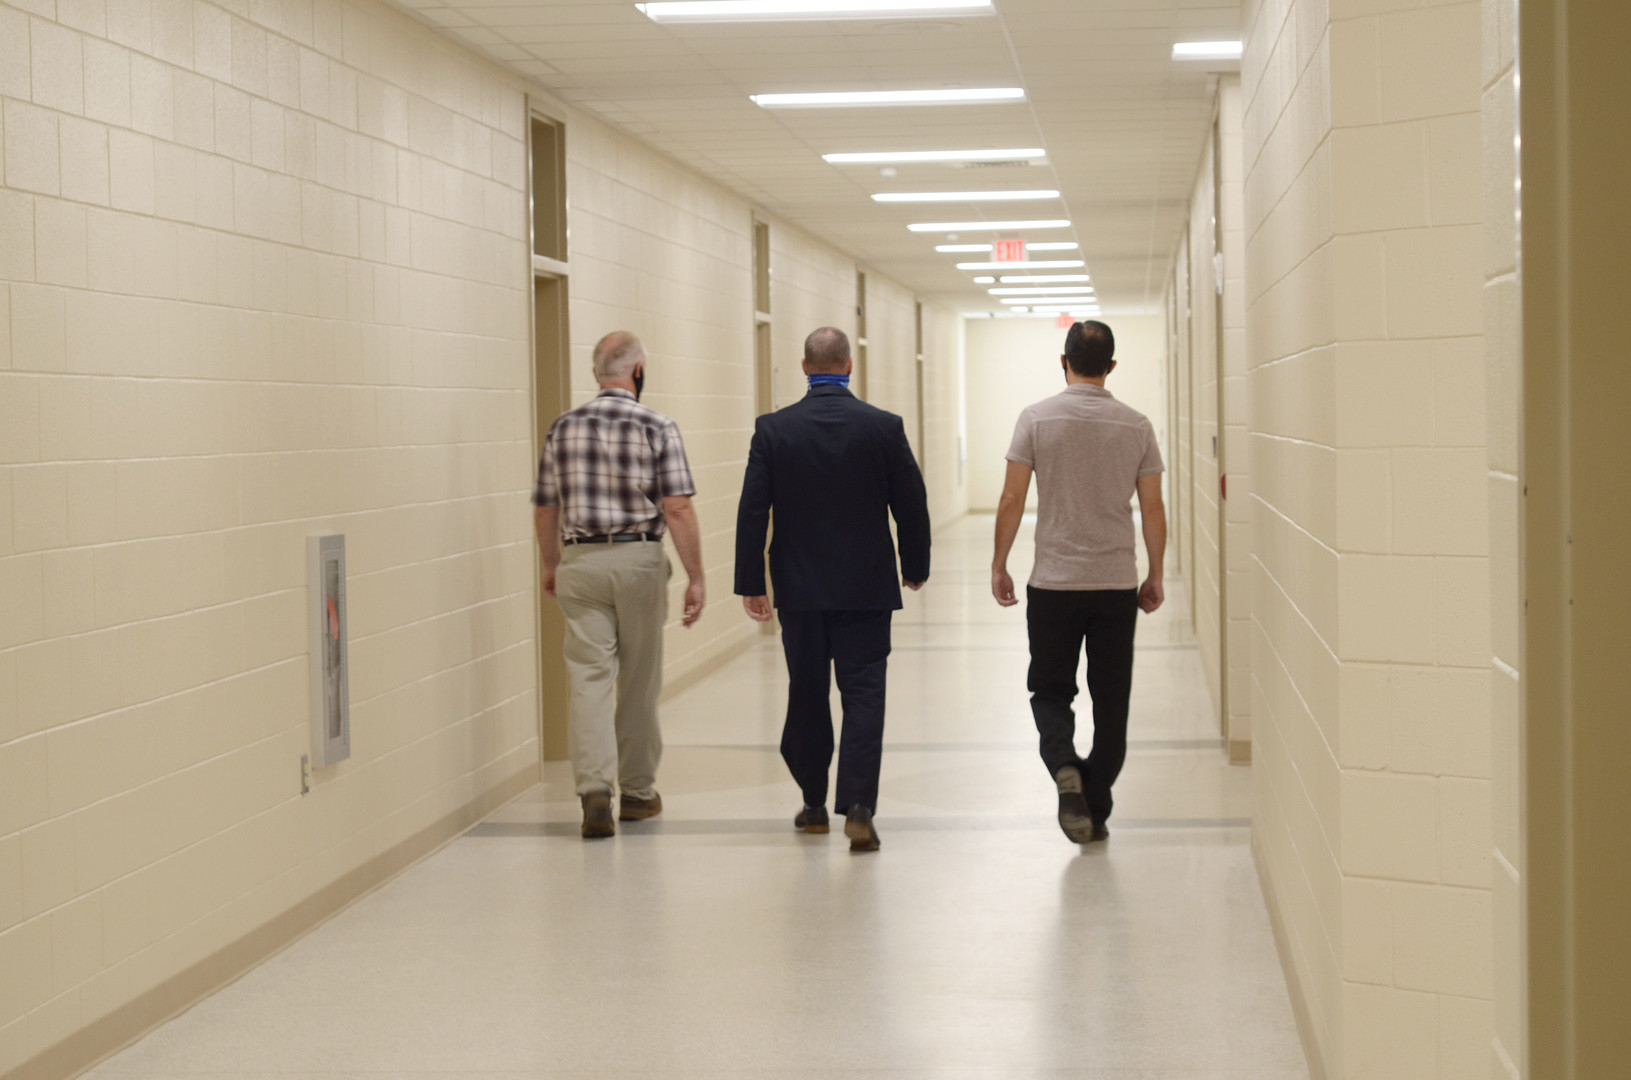 From left, McDowell County Schools Board Member Patrick Ellis, Superintendent Mark Garrett, and N.C. Representative and Labor Commissioner Candidate Josh Dobson walk through the hallways of the new school during a tour on Monday.